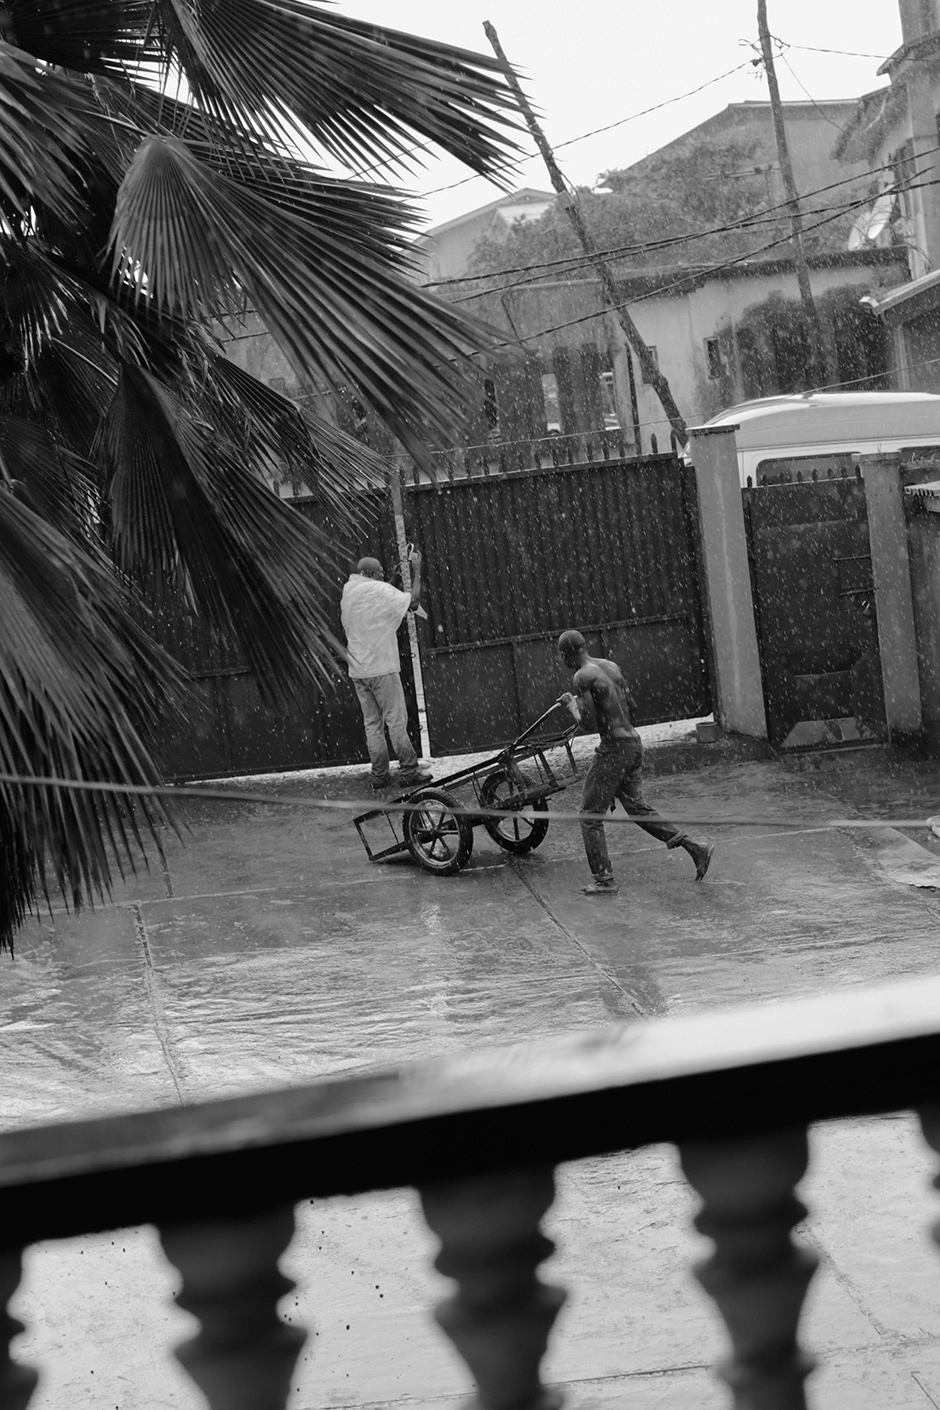 Lagos, 2013; photograph by Teju Cole